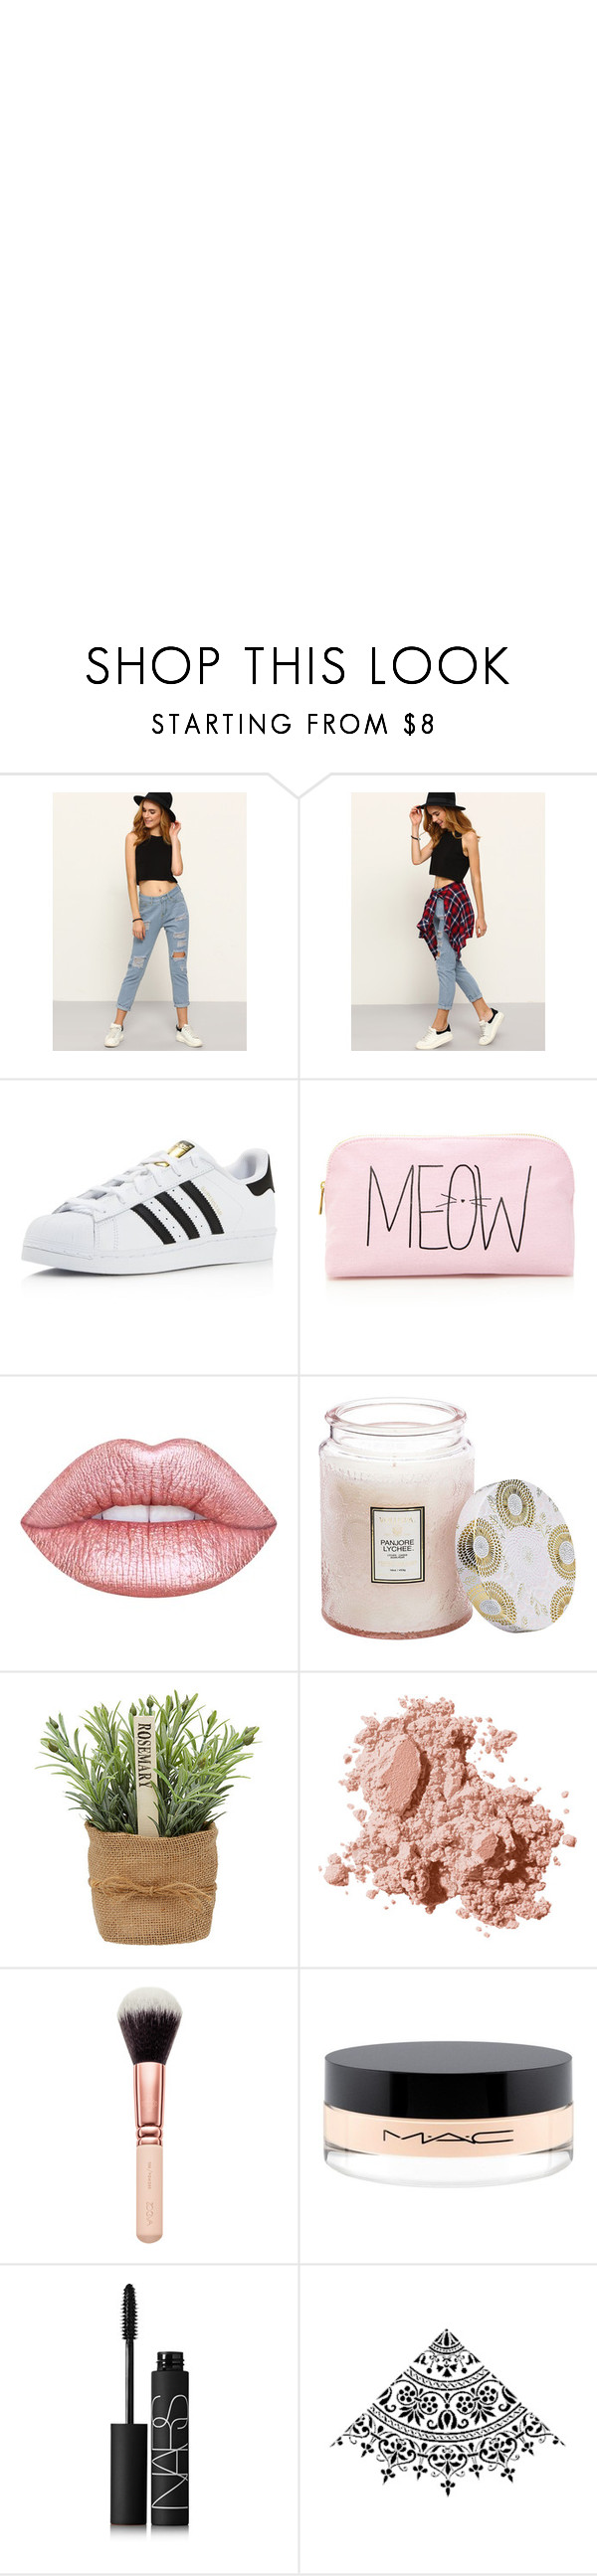 """""""What am i supposed to say? -Romwe"""" by rhiannonpsayer on Polyvore featuring Murphy, adidas, Forever 21, Lime Crime, Voluspa, Bobbi Brown Cosmetics, MAC Cosmetics and NARS Cosmetics"""